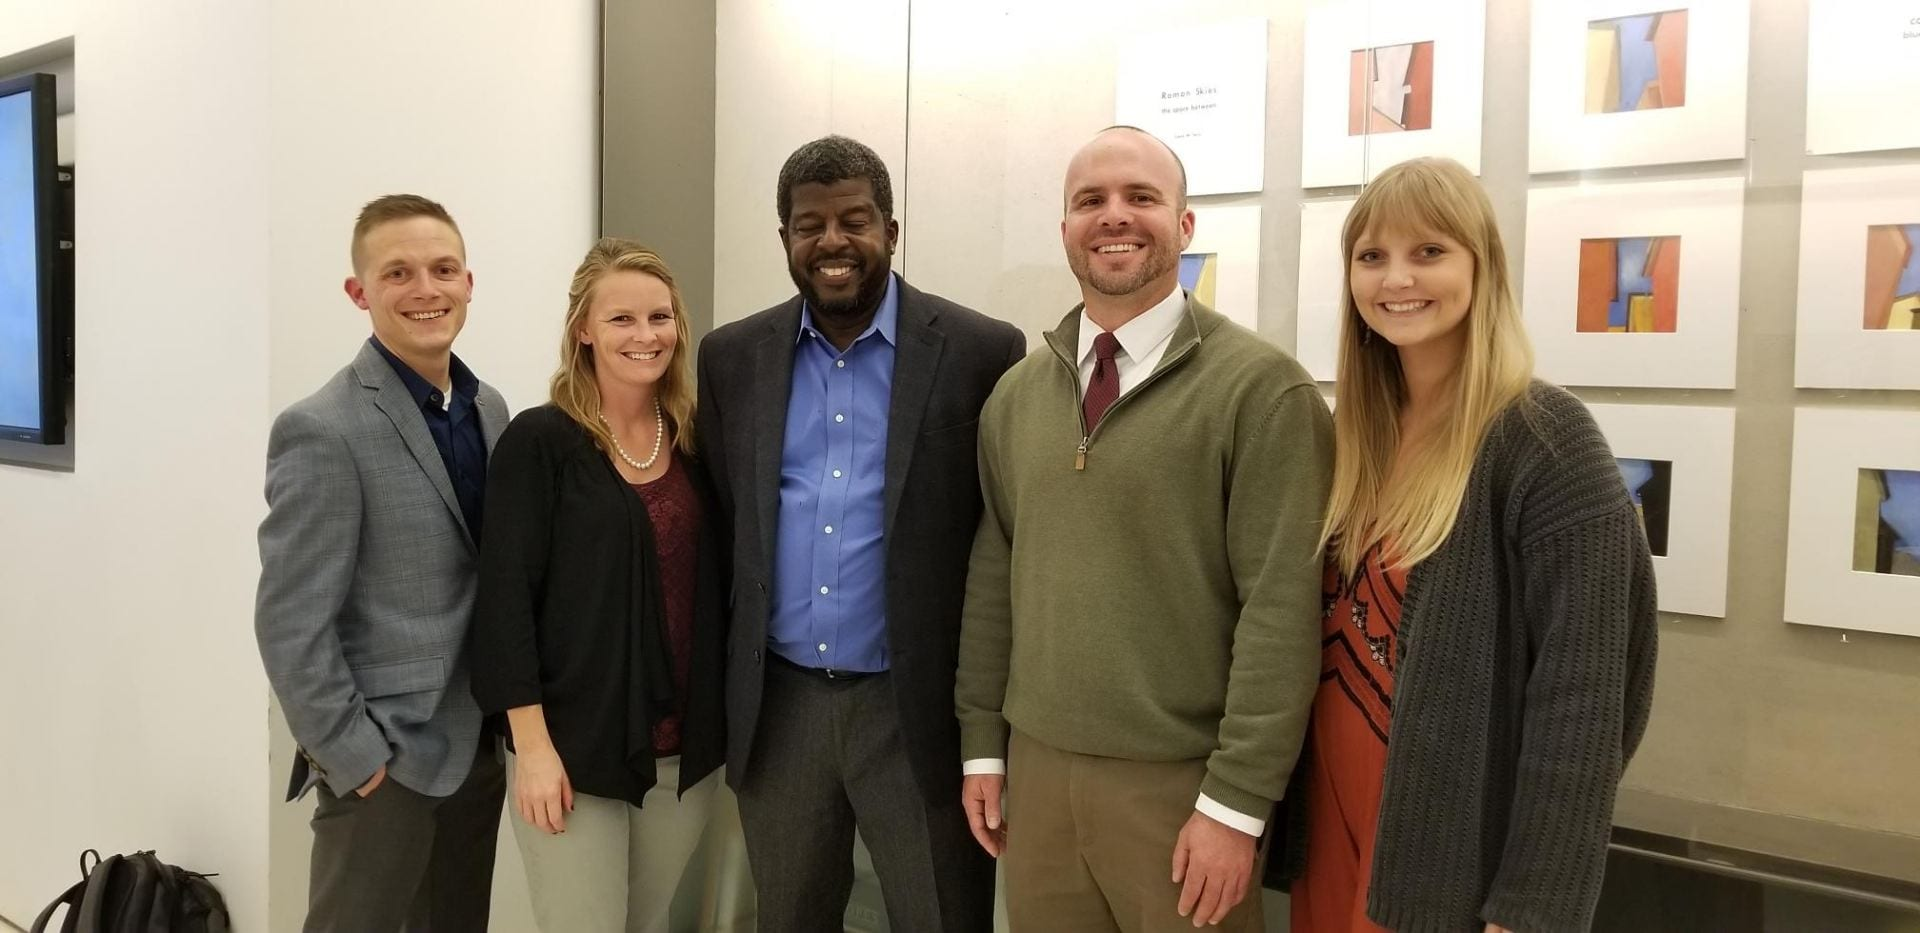 This team coordinated efforts that made Global Ethics Day a success. Pictured, Academic Integrity and Initiatives staff from left, graduate assistant JD DiLoreto, program coordinator Hannah Johnson, VDP Holmes, executive director Chris Bryson, and ASG coordinator Carsen Sims. 10/18/18